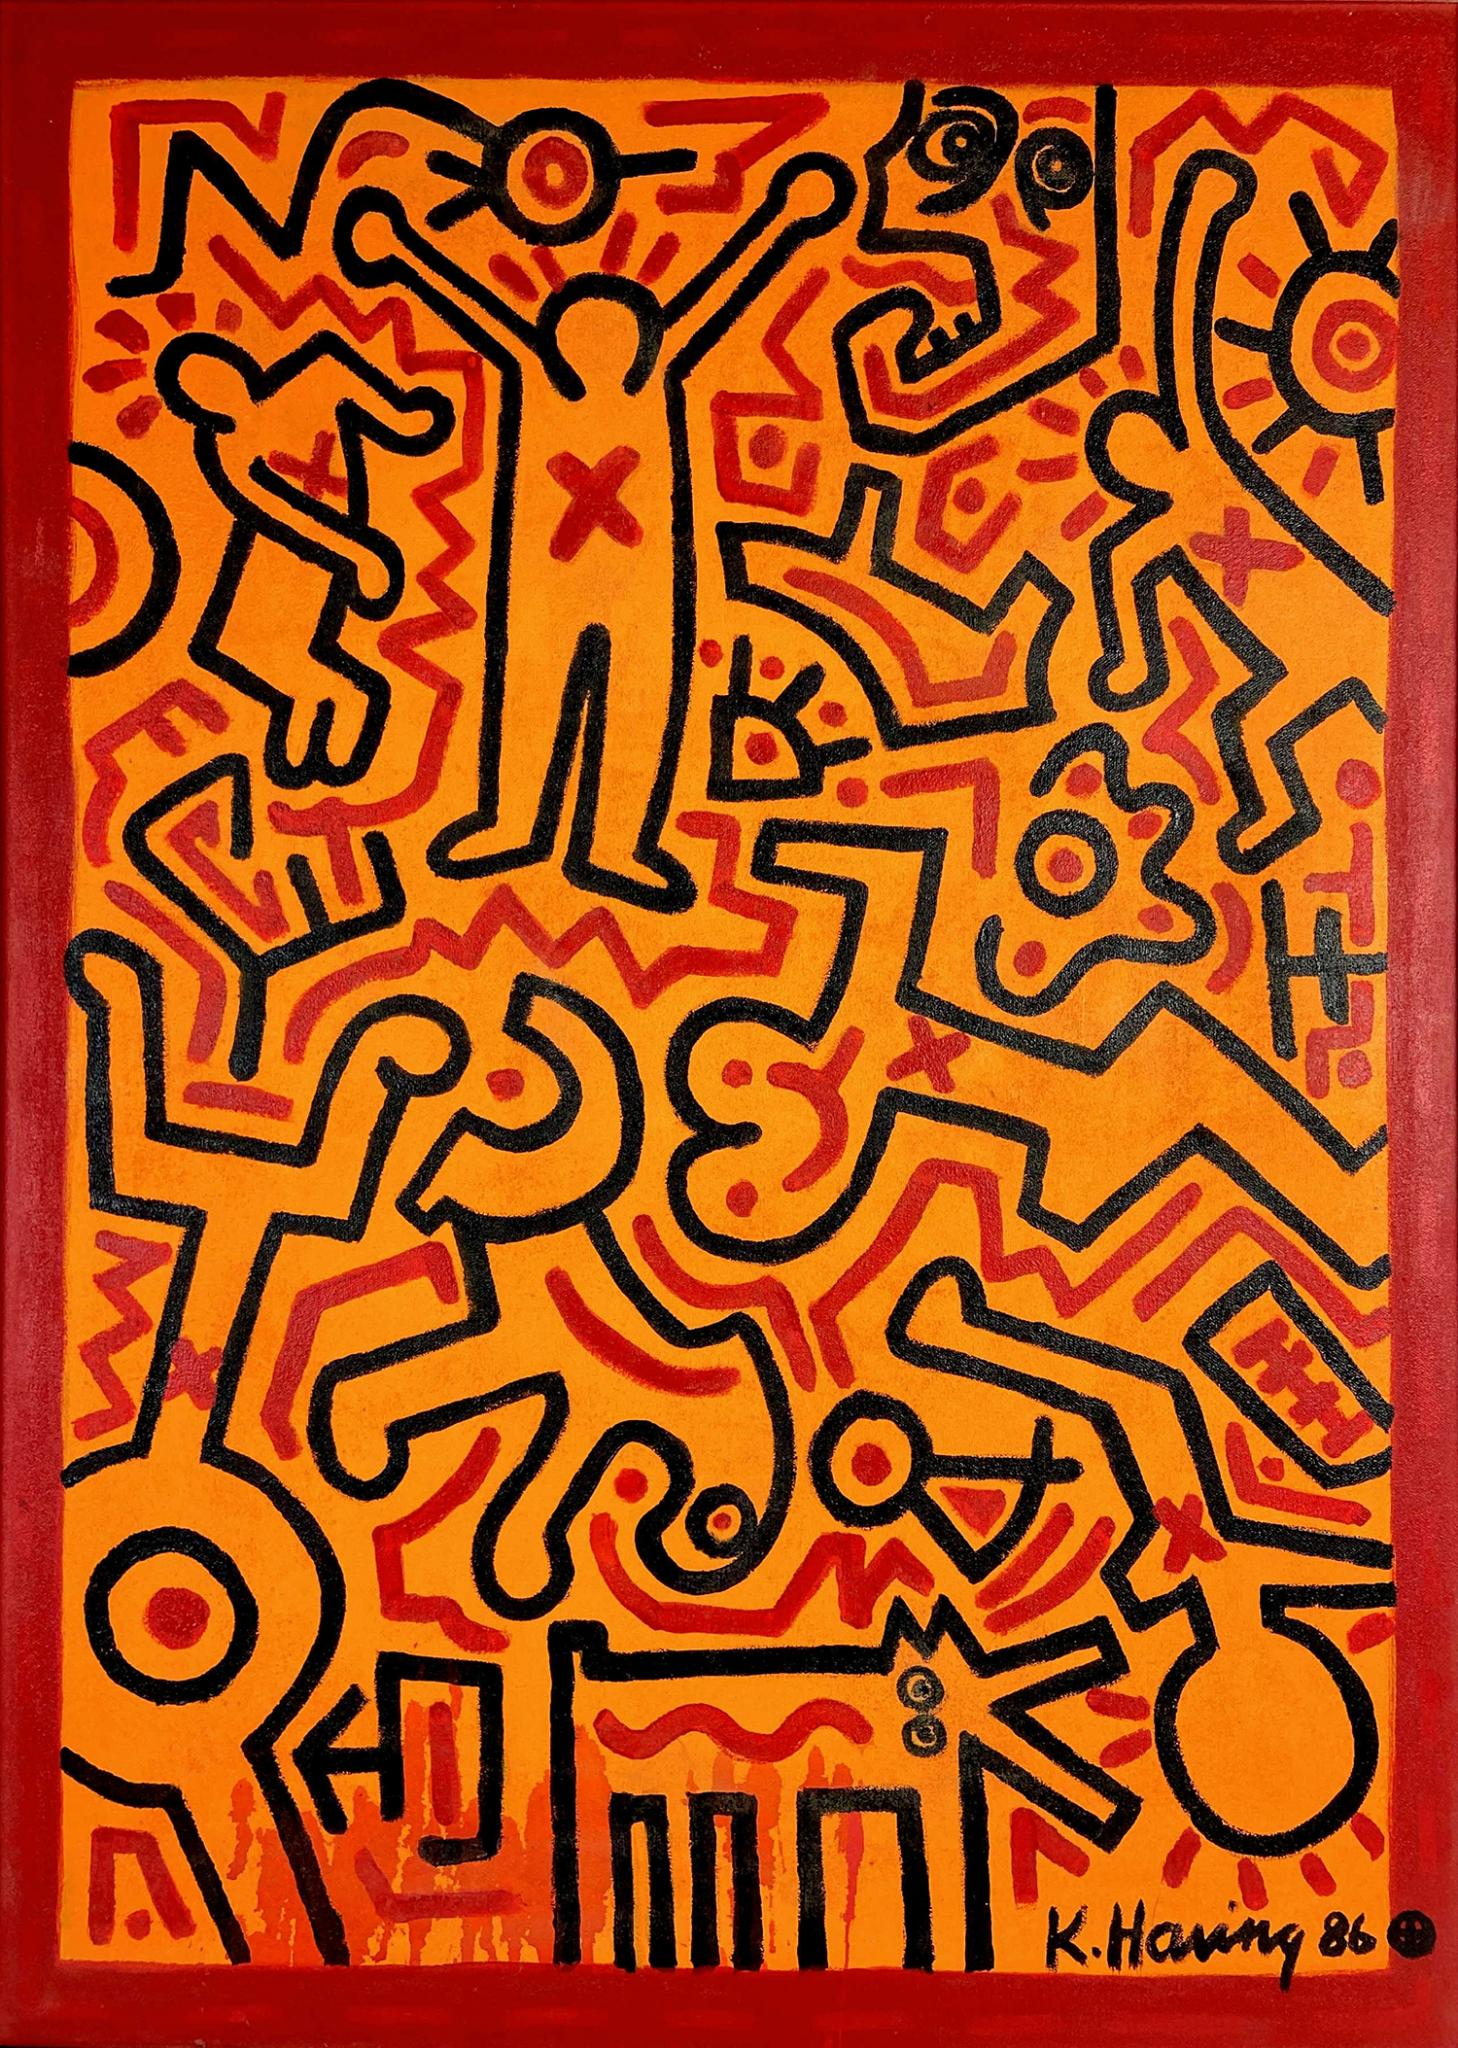 Keith Haring, courtesy of EJ's Auction & Appraisal